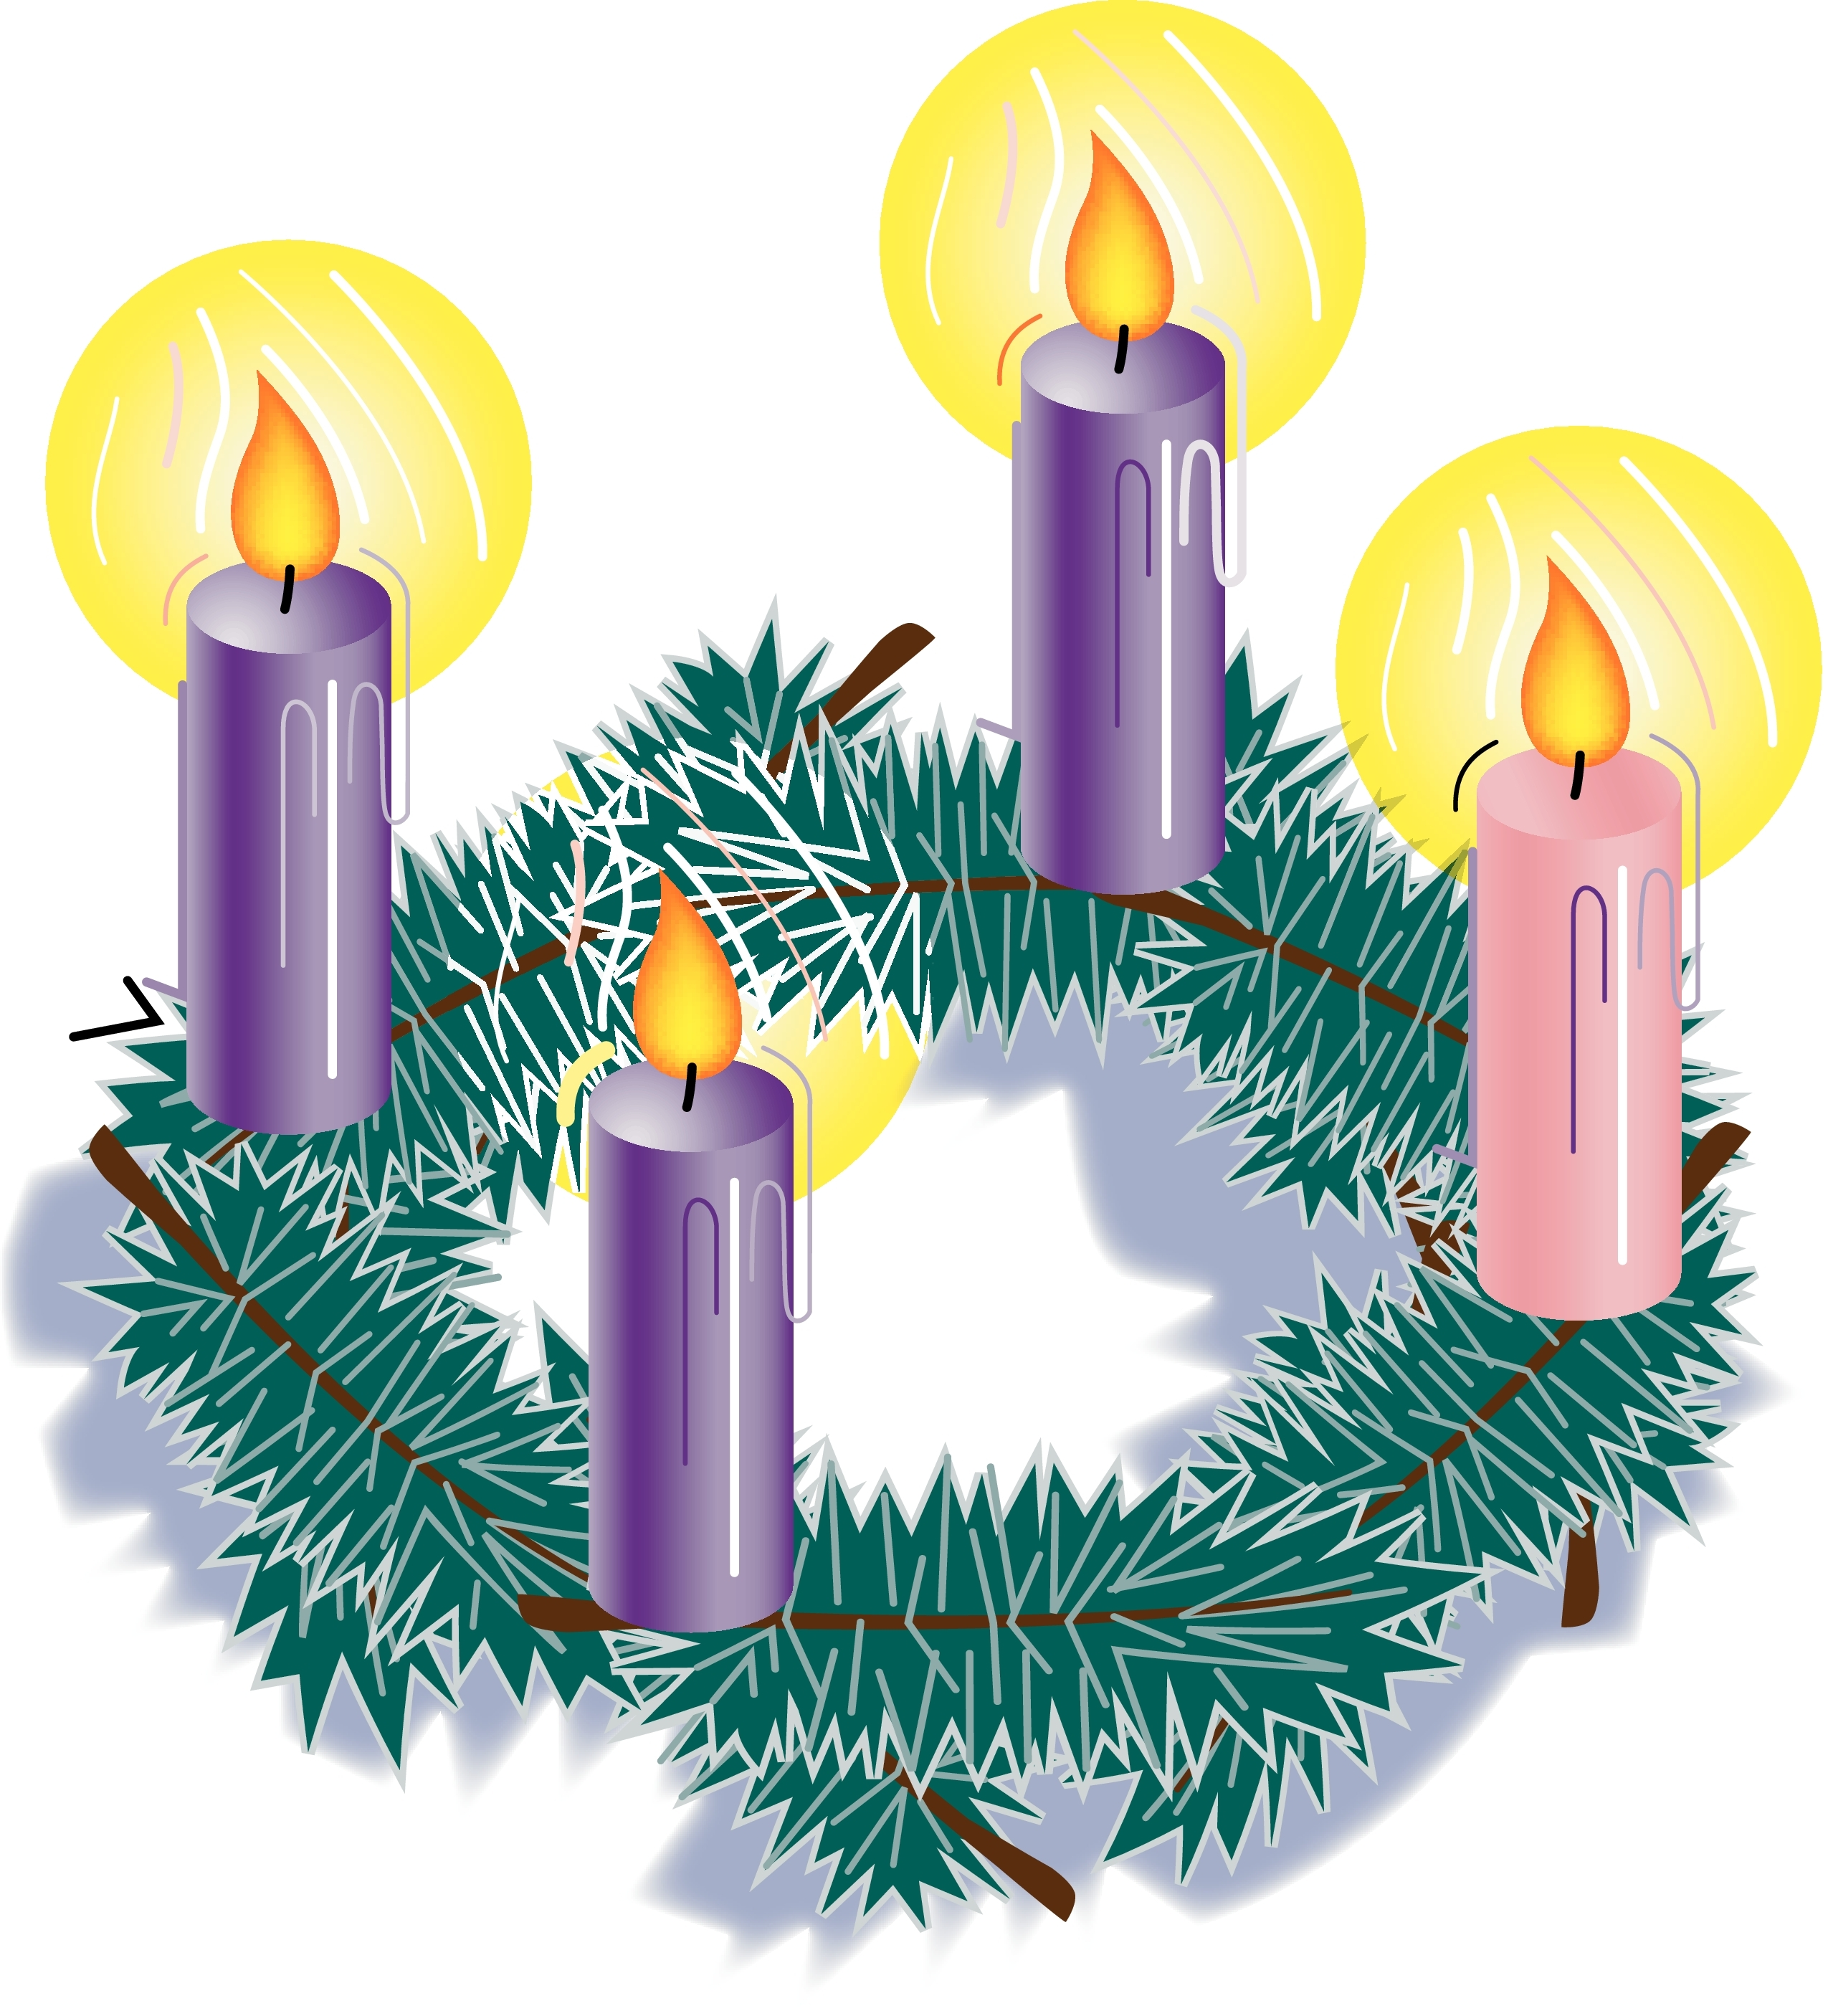 450 Advent Wreath free clipart.